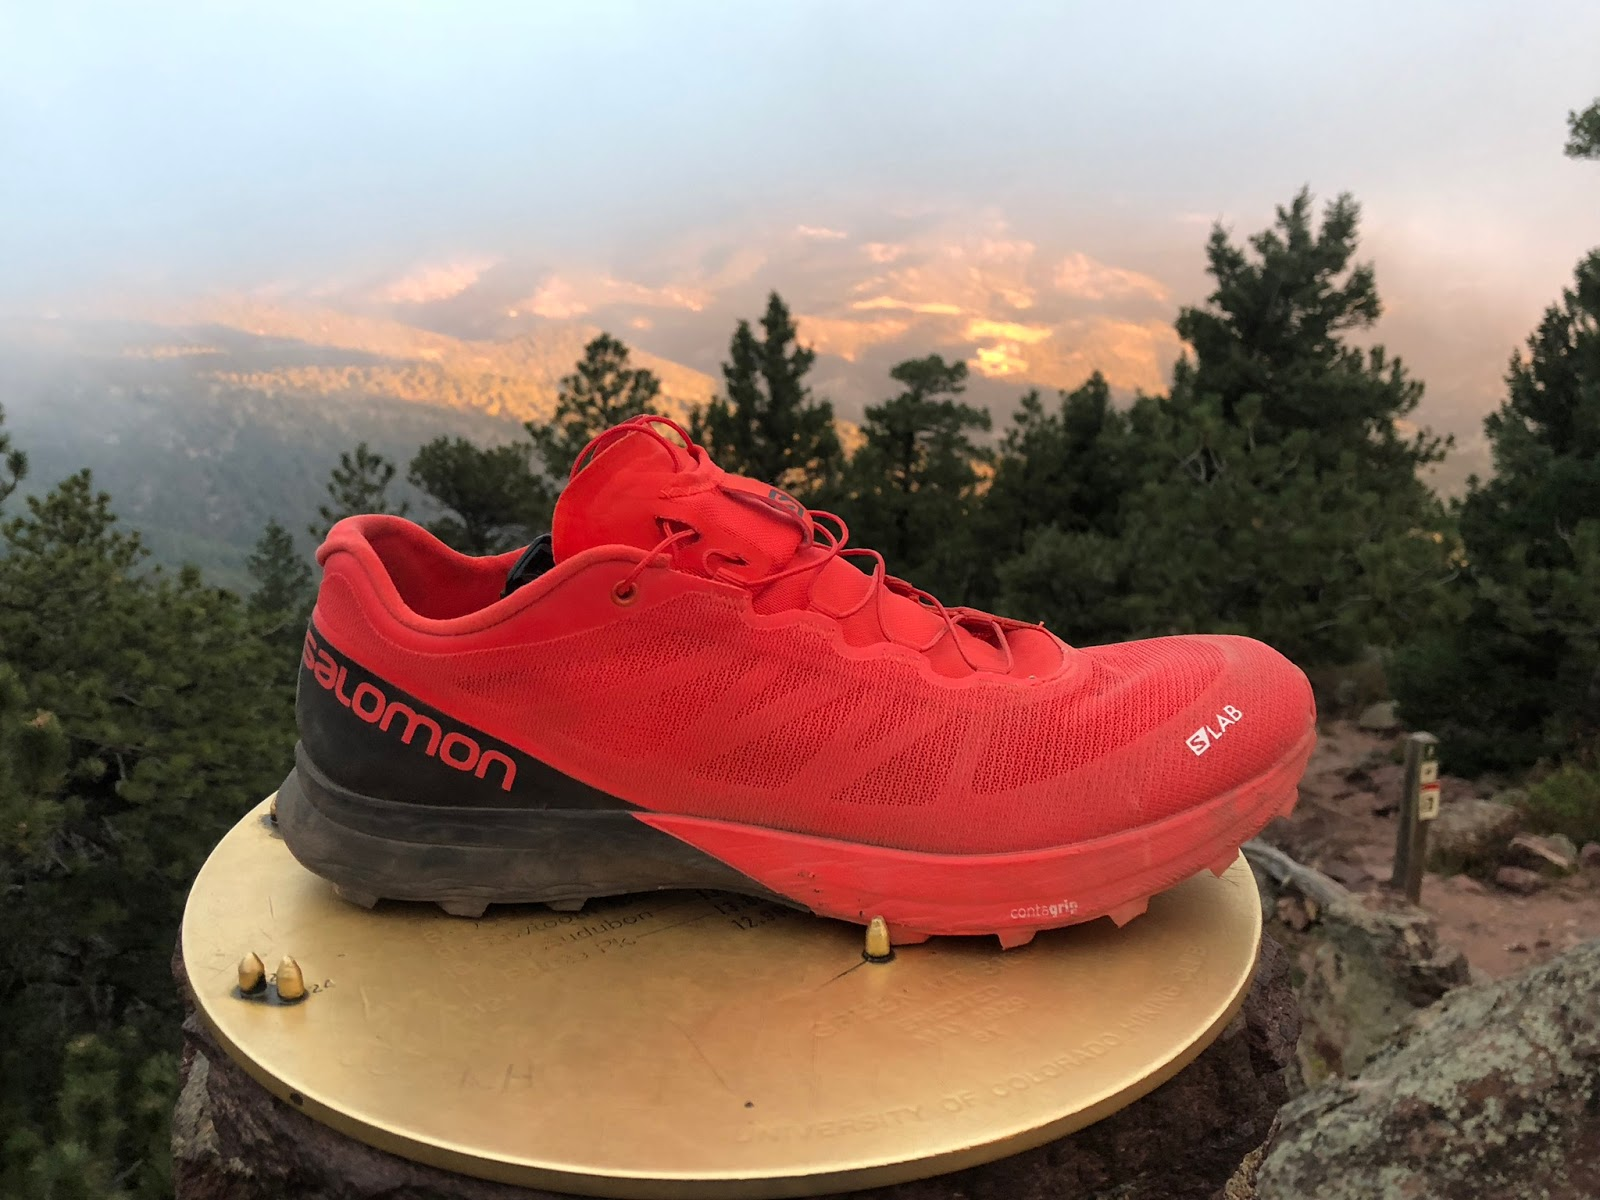 new product a13ee 4b105 Road Trail Run: Salomon S/Lab Sense 7 SG Review - Ultralight ...